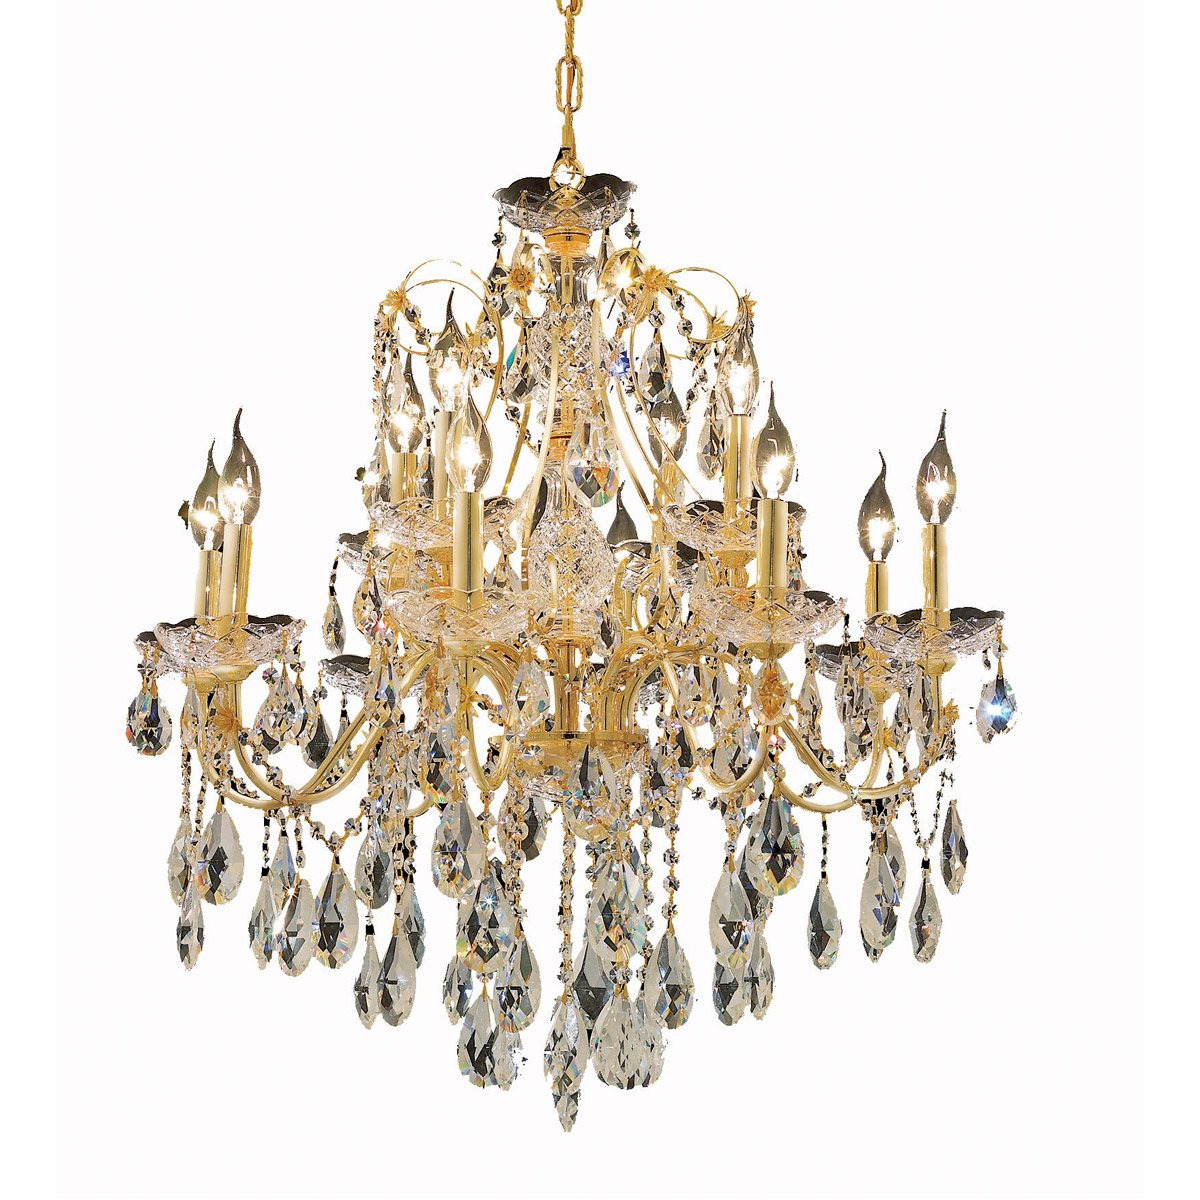 St. Francis 28 Crystal Chandelier With 12 Lights - Gold Finish And Royal Cut Crystal Chandelier